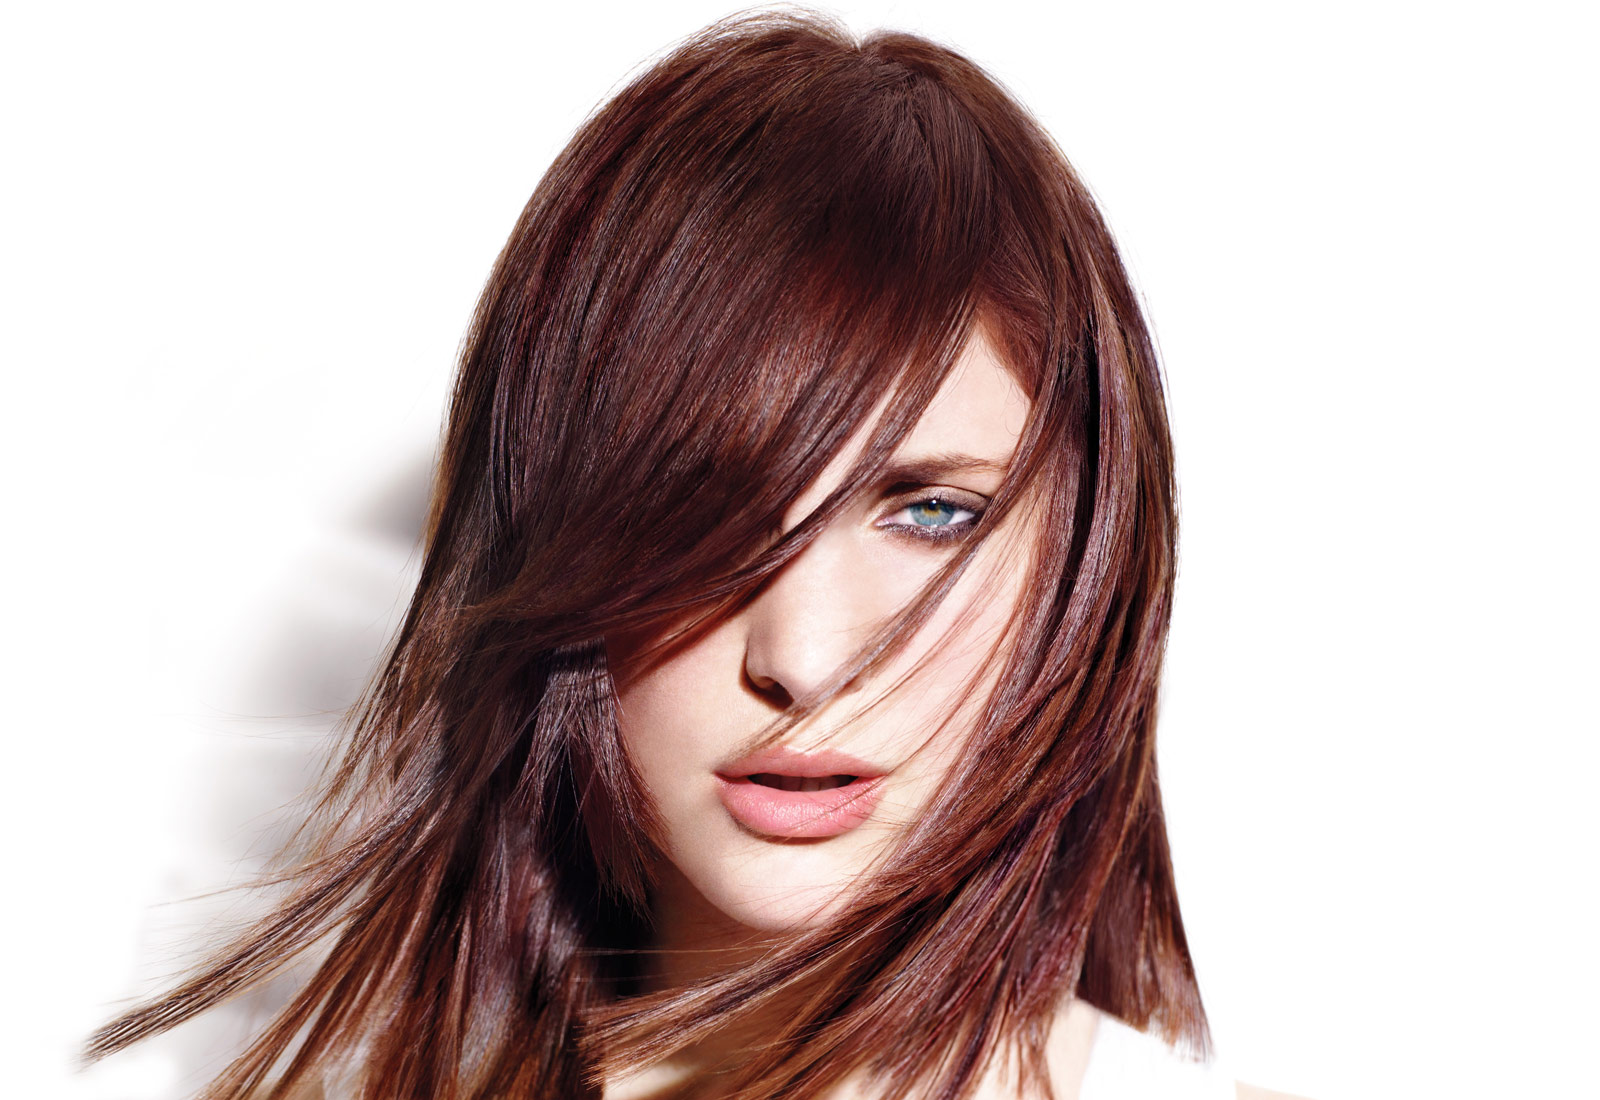 Hair Color Services : Hair Coloring Services By Redken Shades Hair Color See The Latest H ...